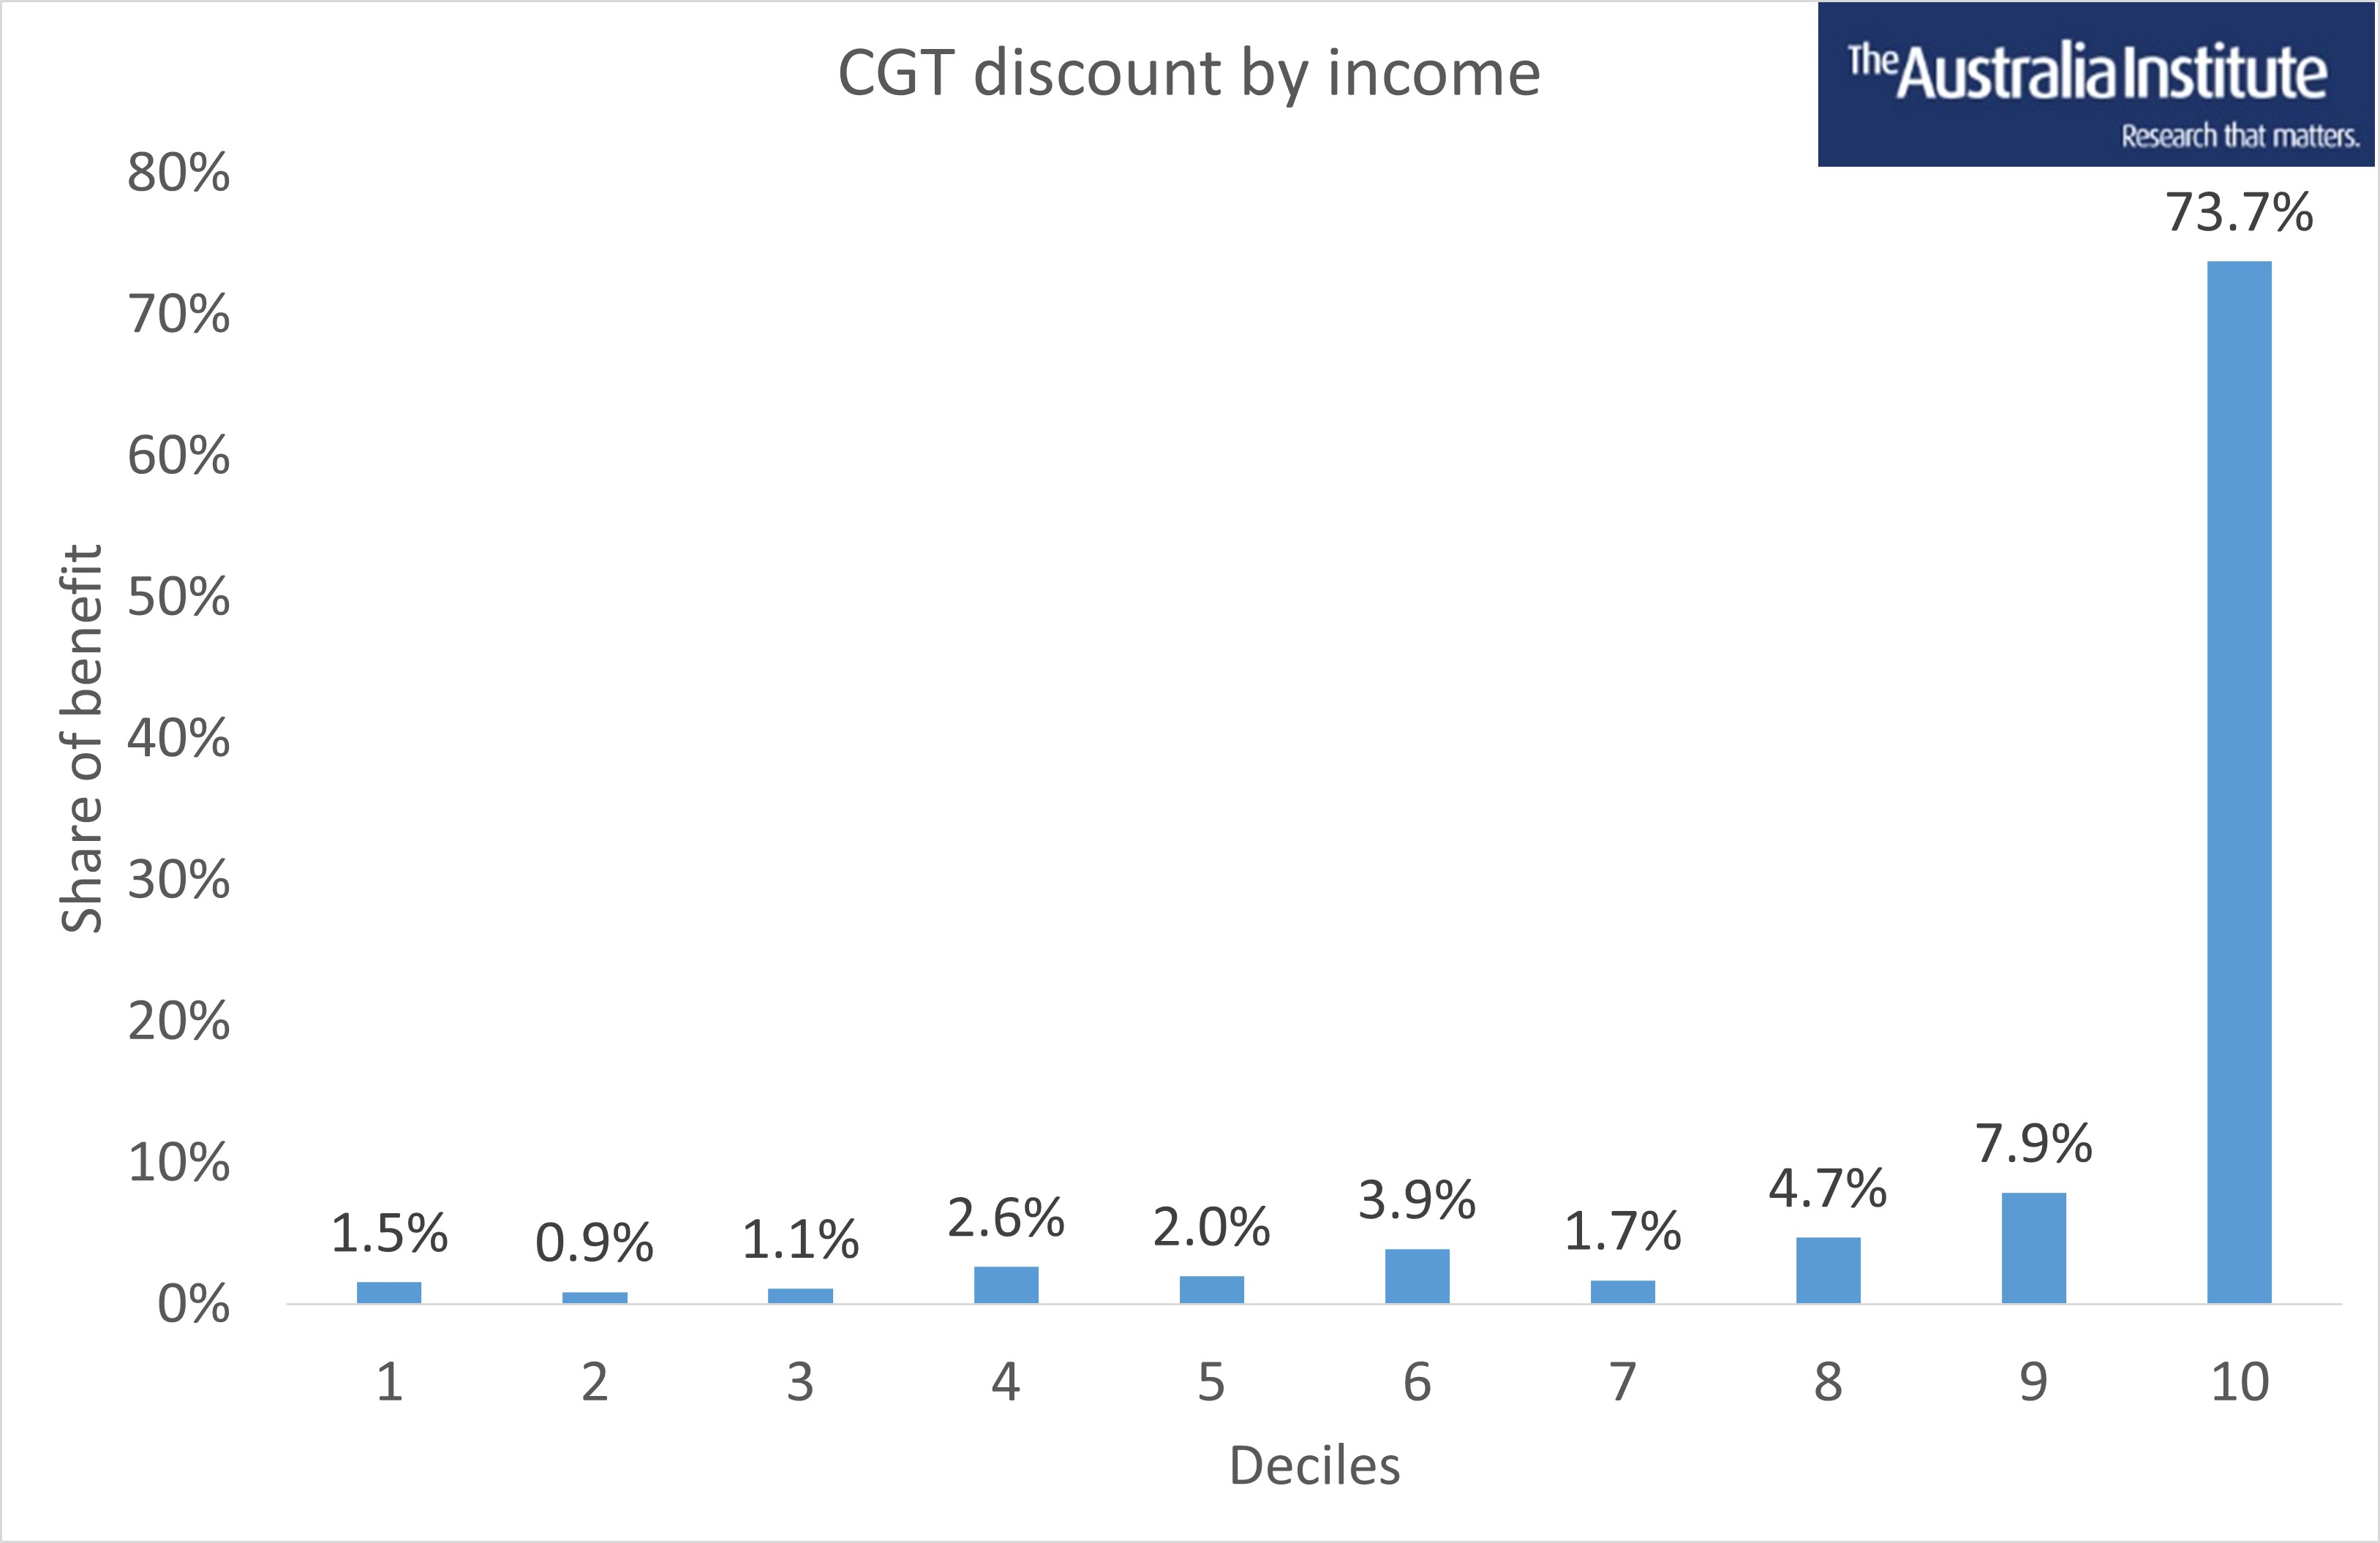 CGT by income